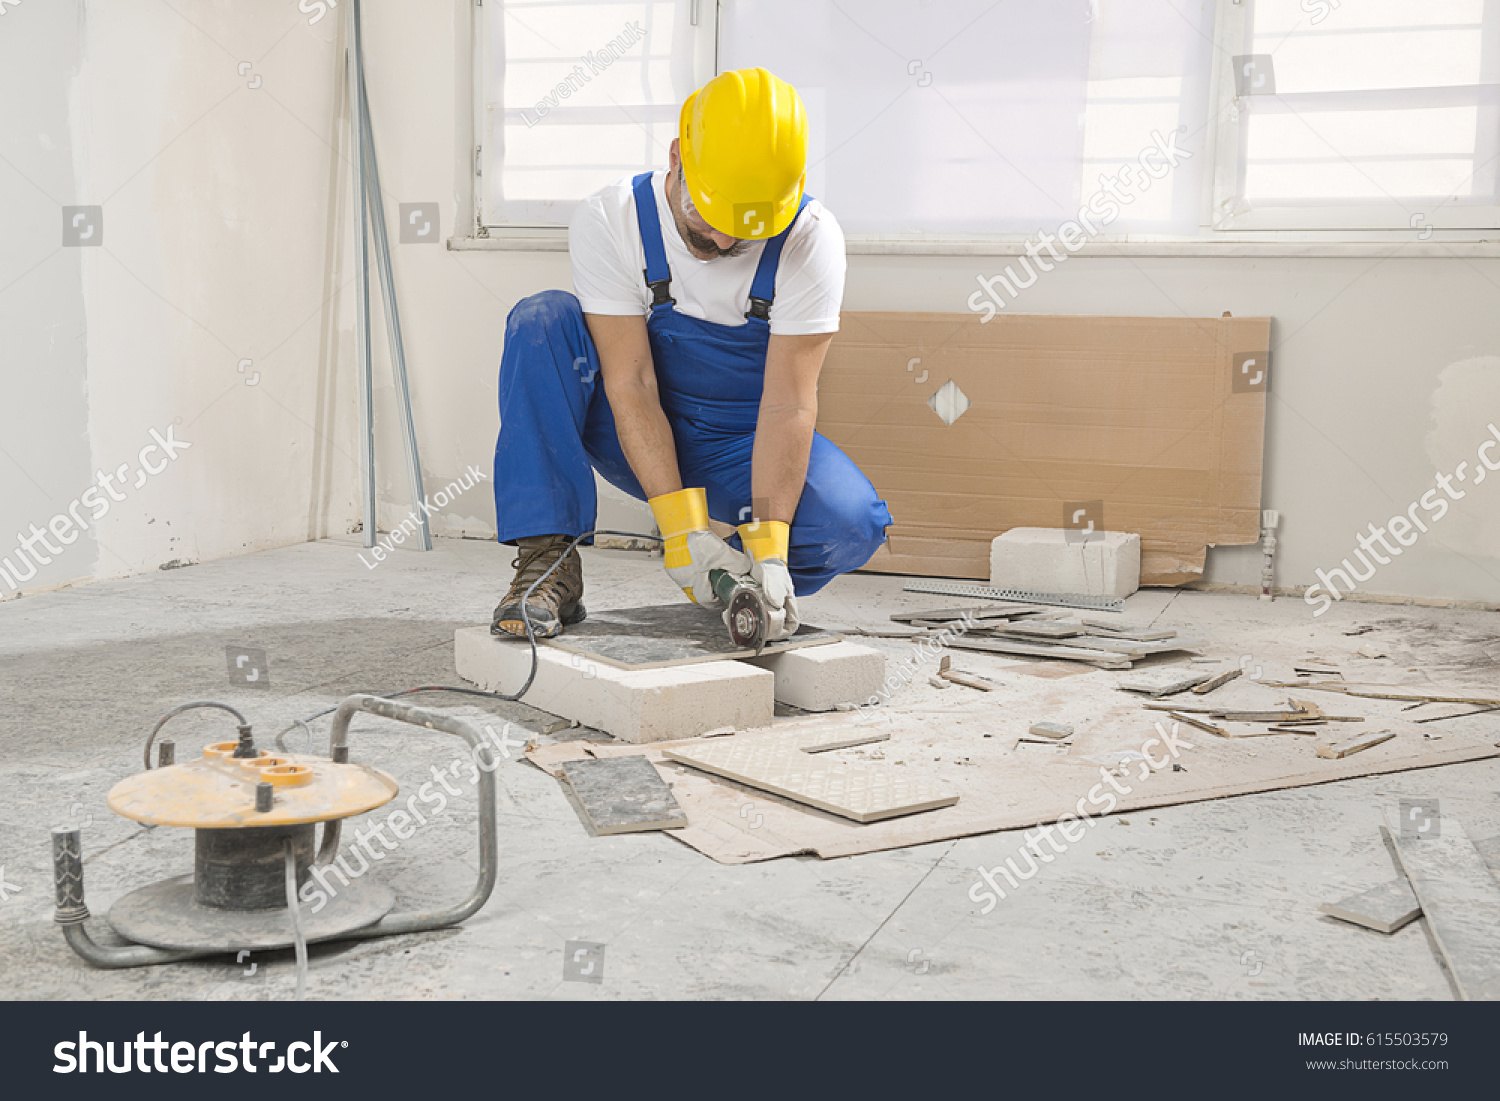 Cutting ceramic tile with angle grinder image collections tile cutting ceramic tile with angle grinder image collections tile cut ceramic tile with grinder choice image doublecrazyfo Gallery